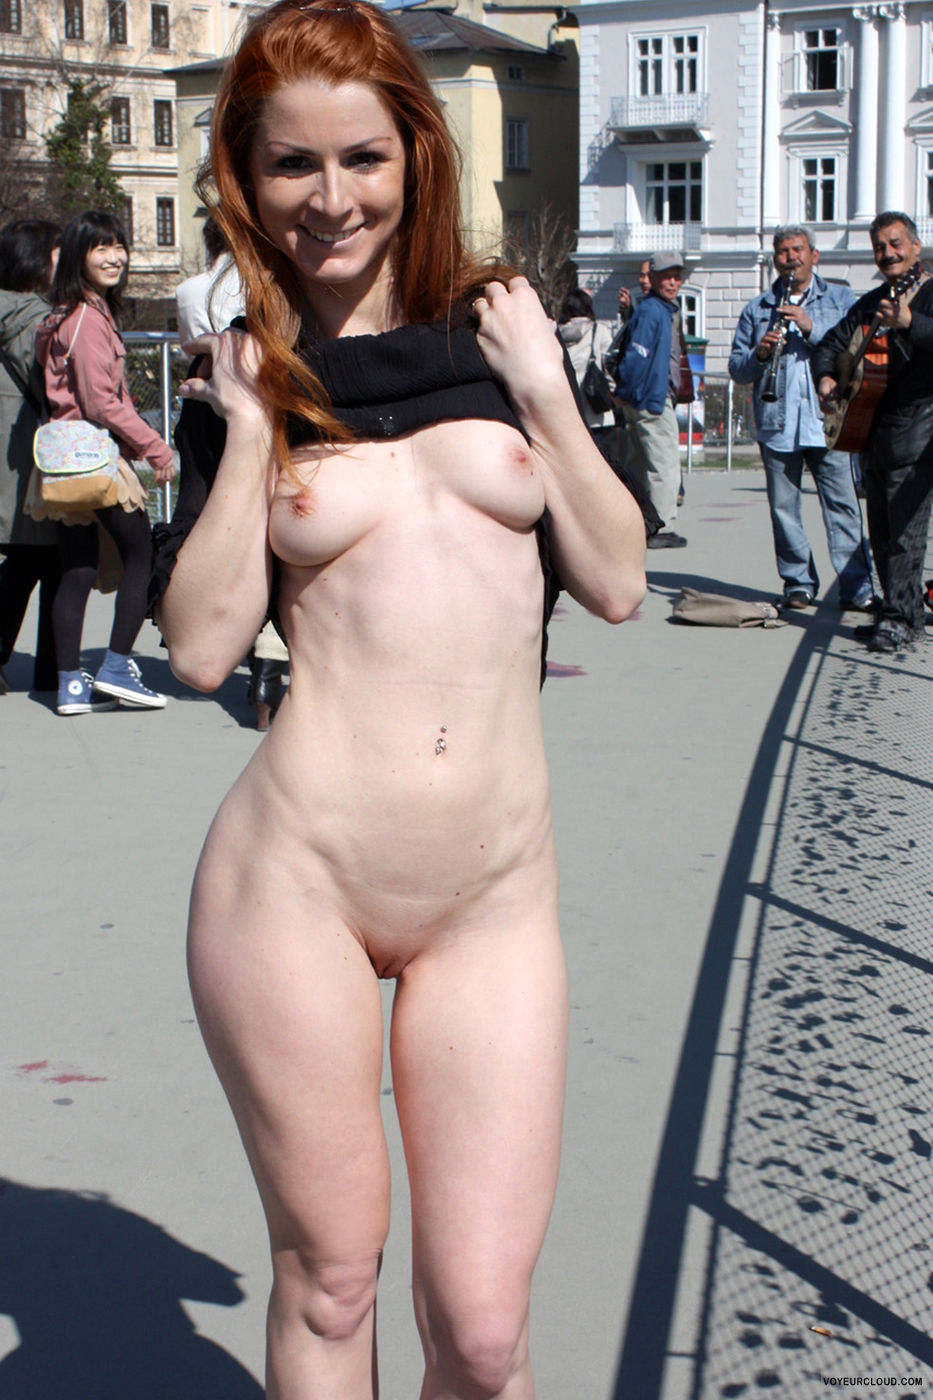 vienna-hot-day-in-salzburg-public-nude-06